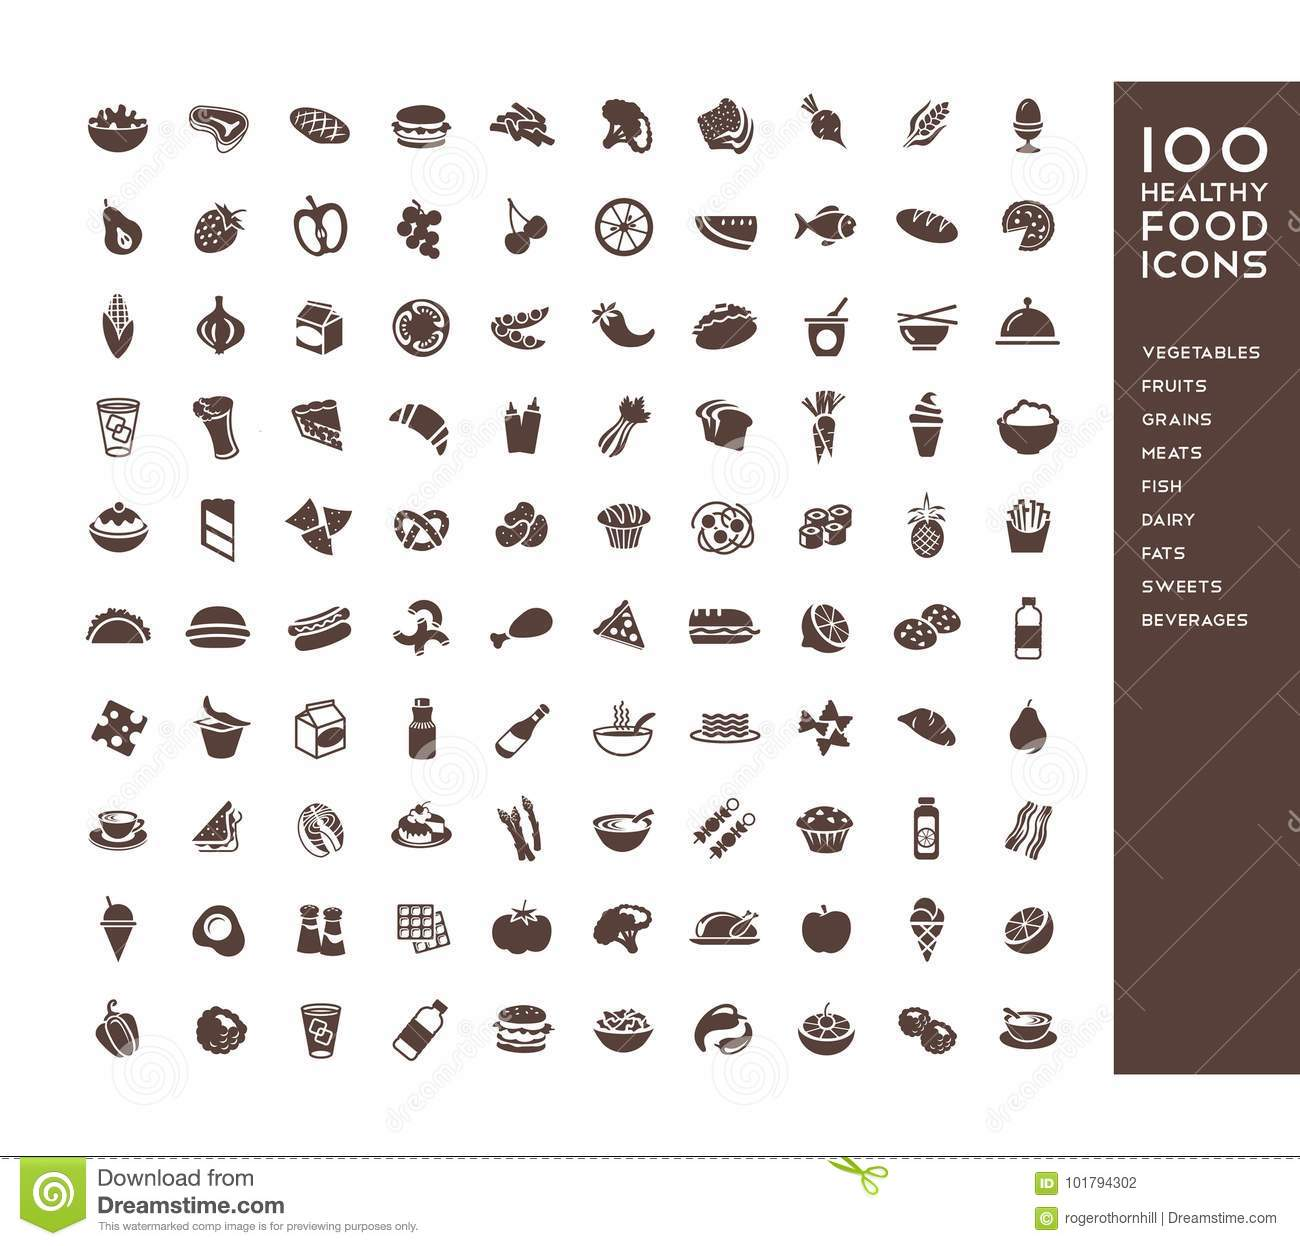 100 healthy food icons